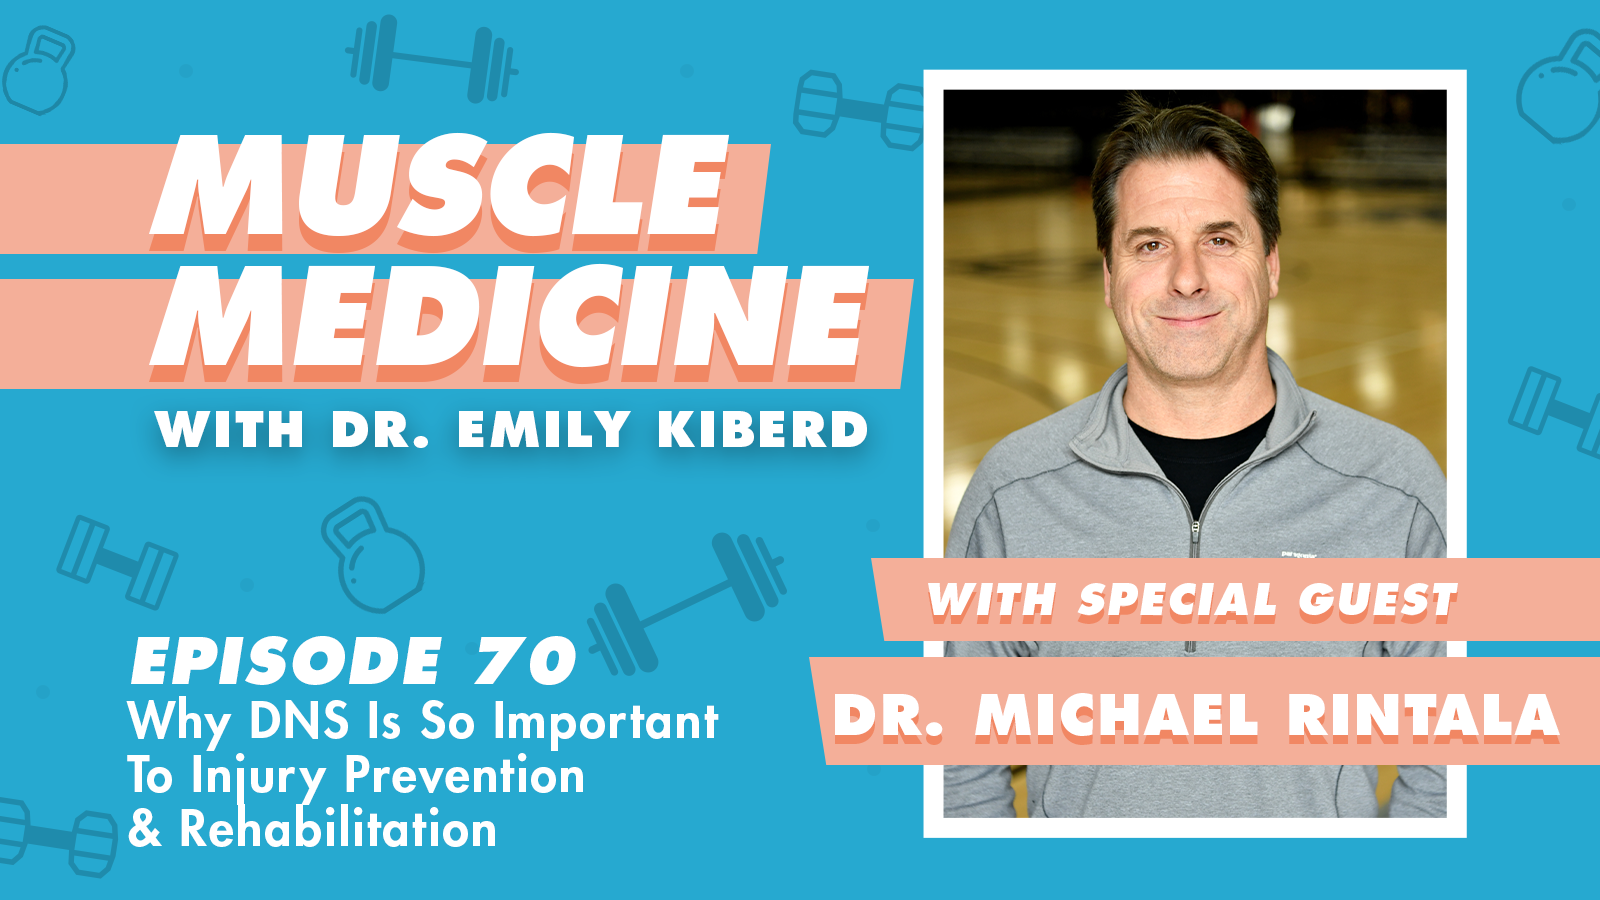 Muscle Medicine Podcast 070 / Why DNS Is So Important To Injury Prevention & Rehabilitation w/ Dr. Michael Rintala